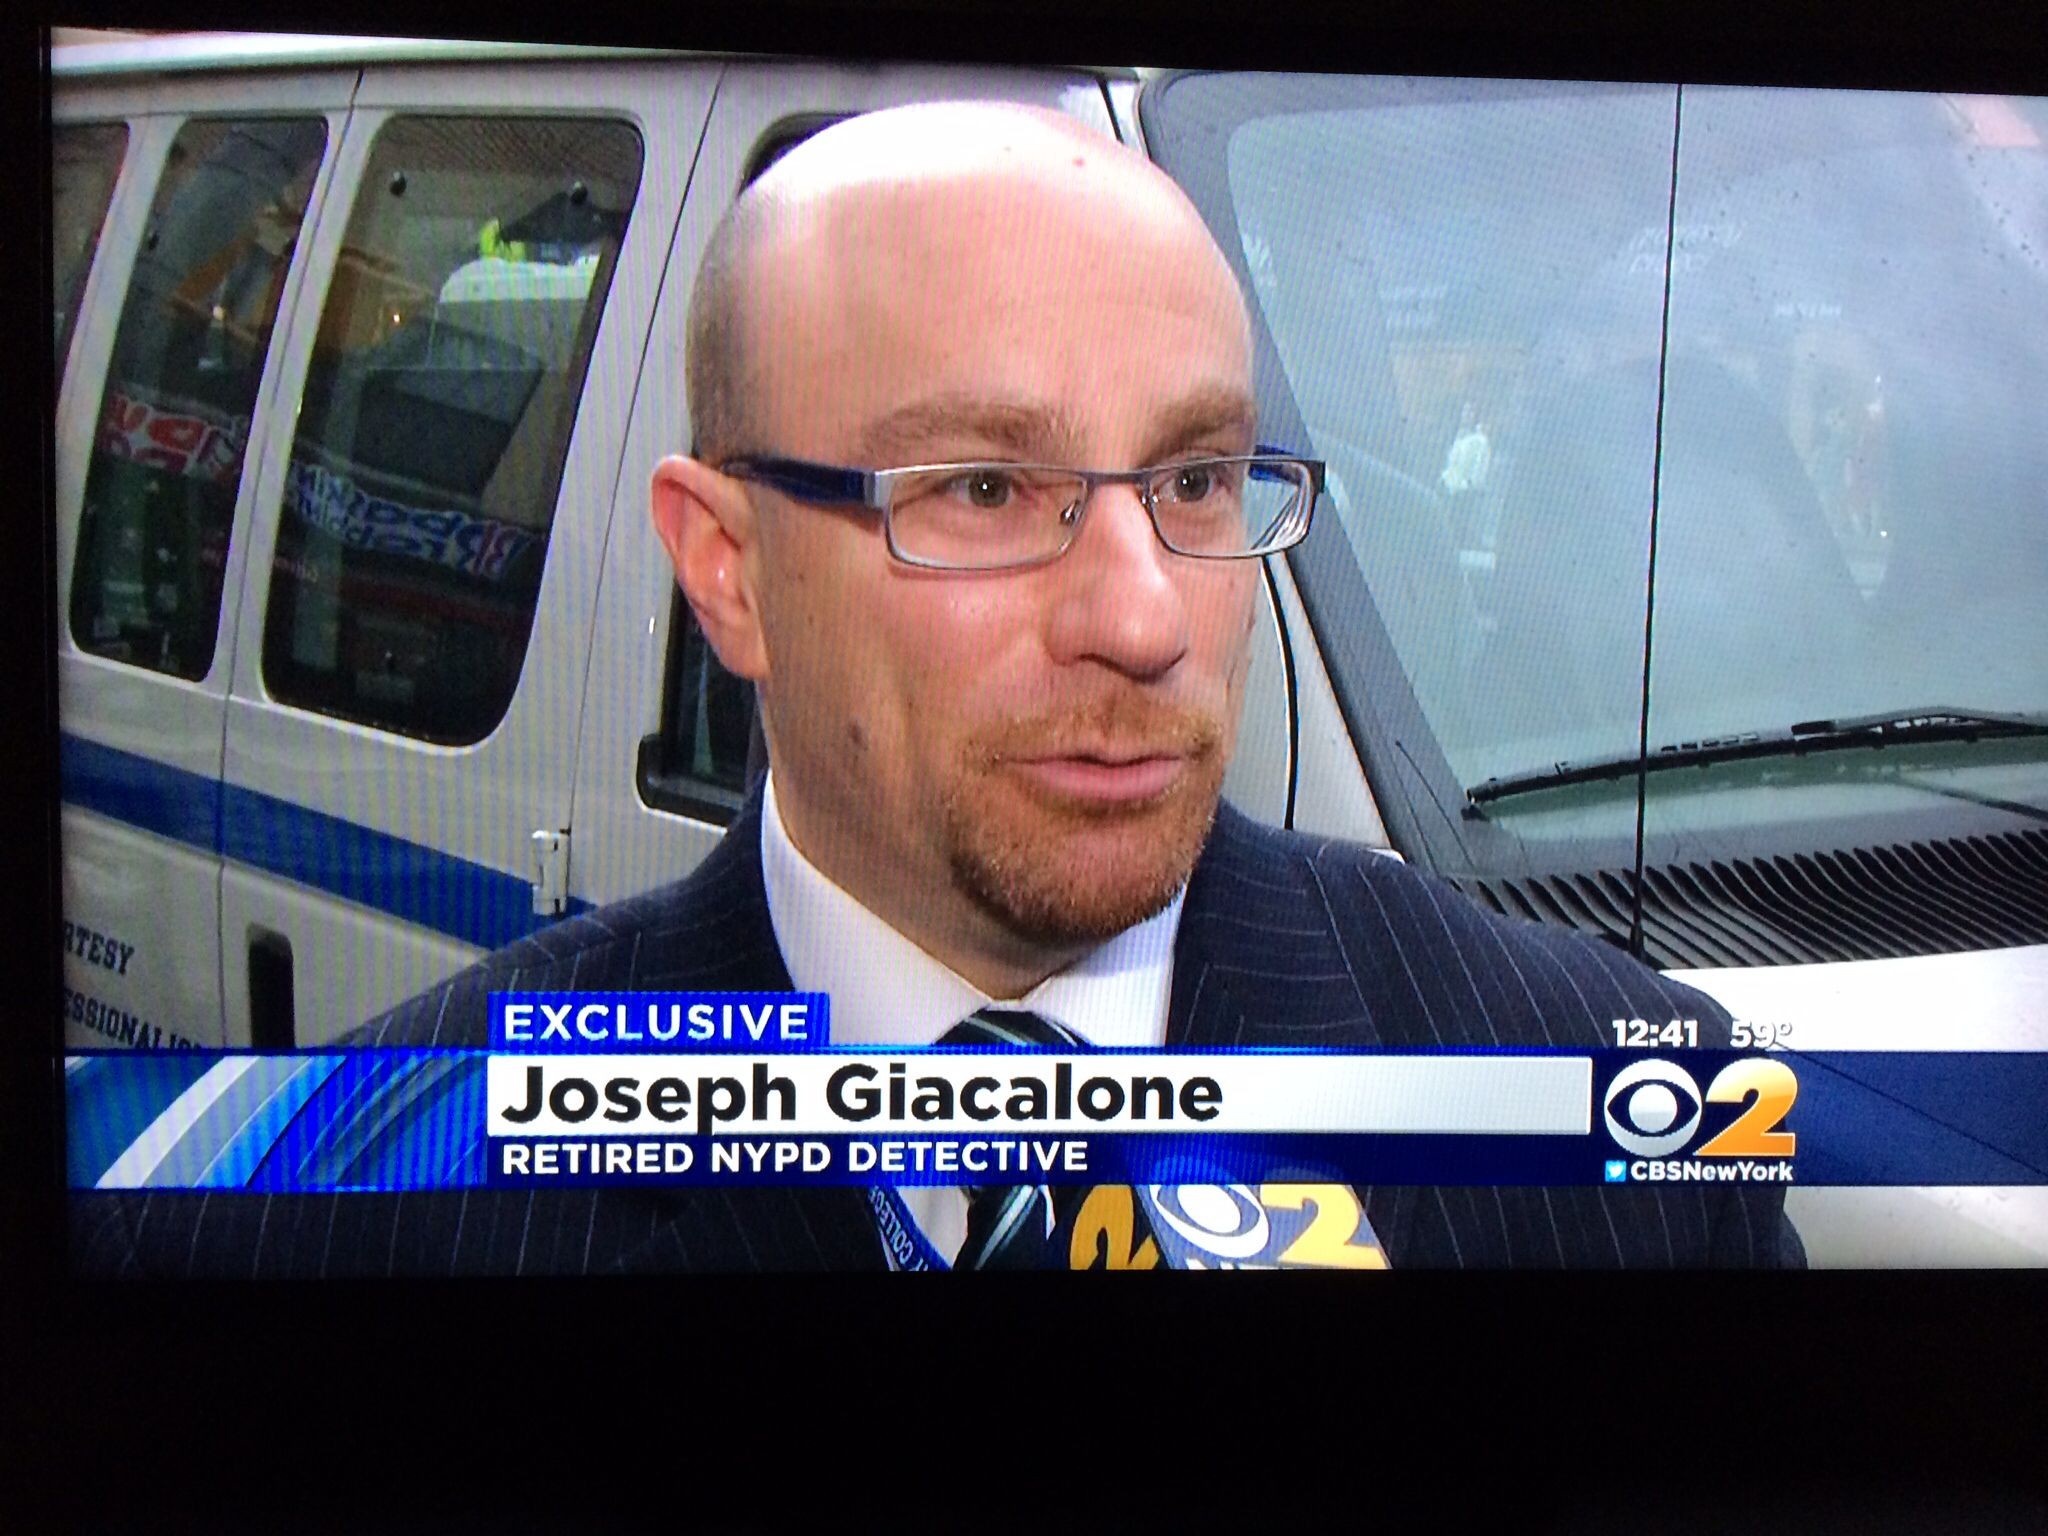 From my recent interview on CBS Channel 2 News, New York